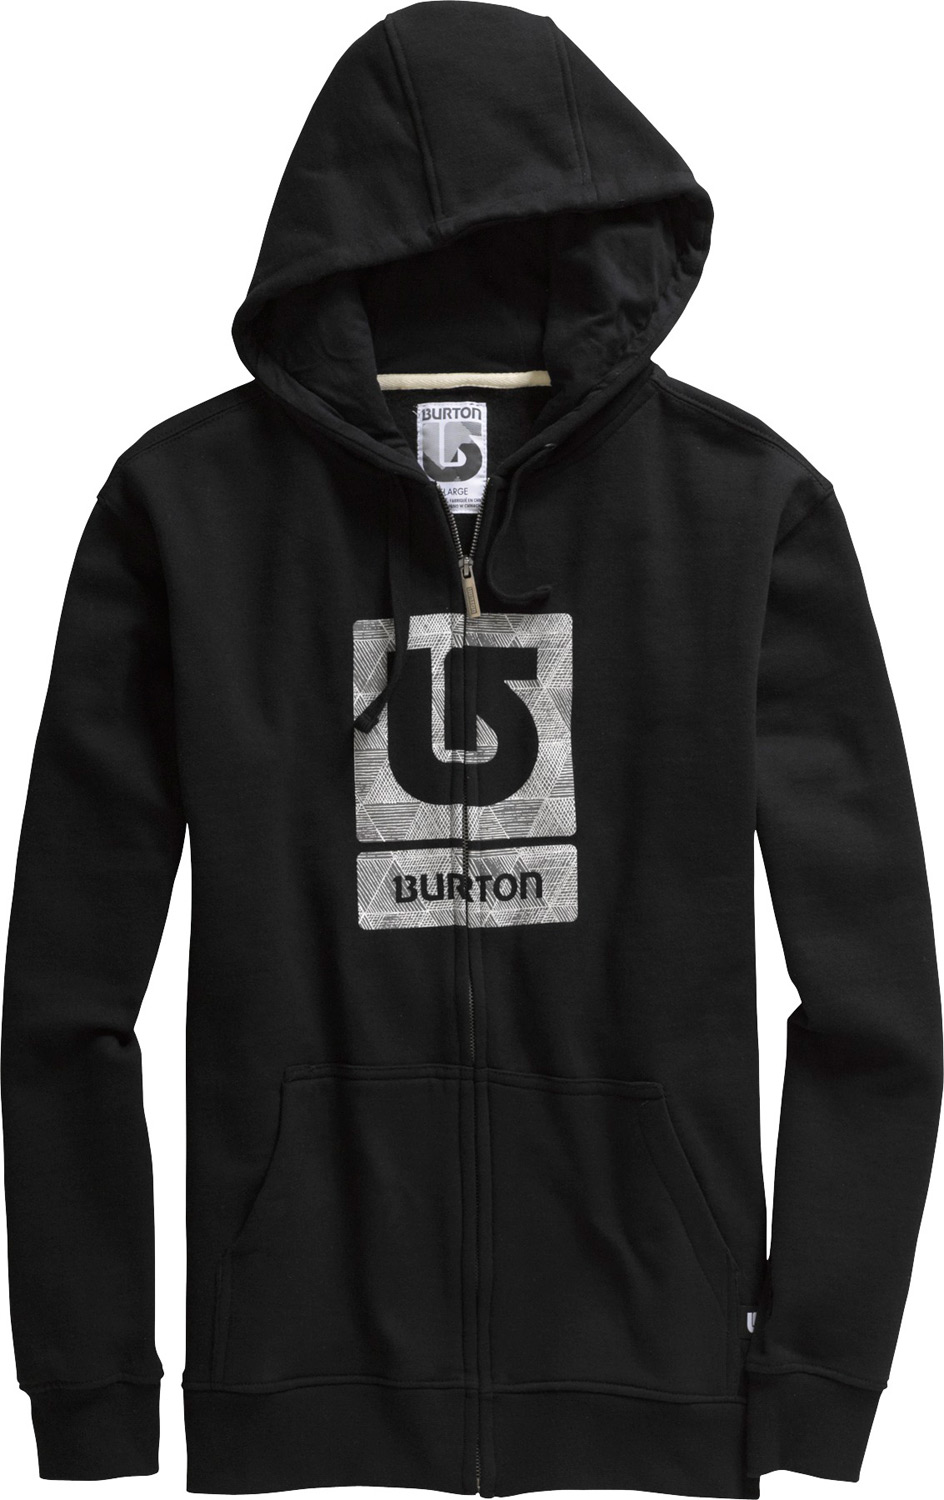 Snowboard Key Features of the Burton Logo Fill Fullzip Hoodie: 80% Cotton, 20% Polyester, 300G Fleece Artwork Varies by Colorway Signature Fit Vertical Logo Fill Print on Chest - $36.95